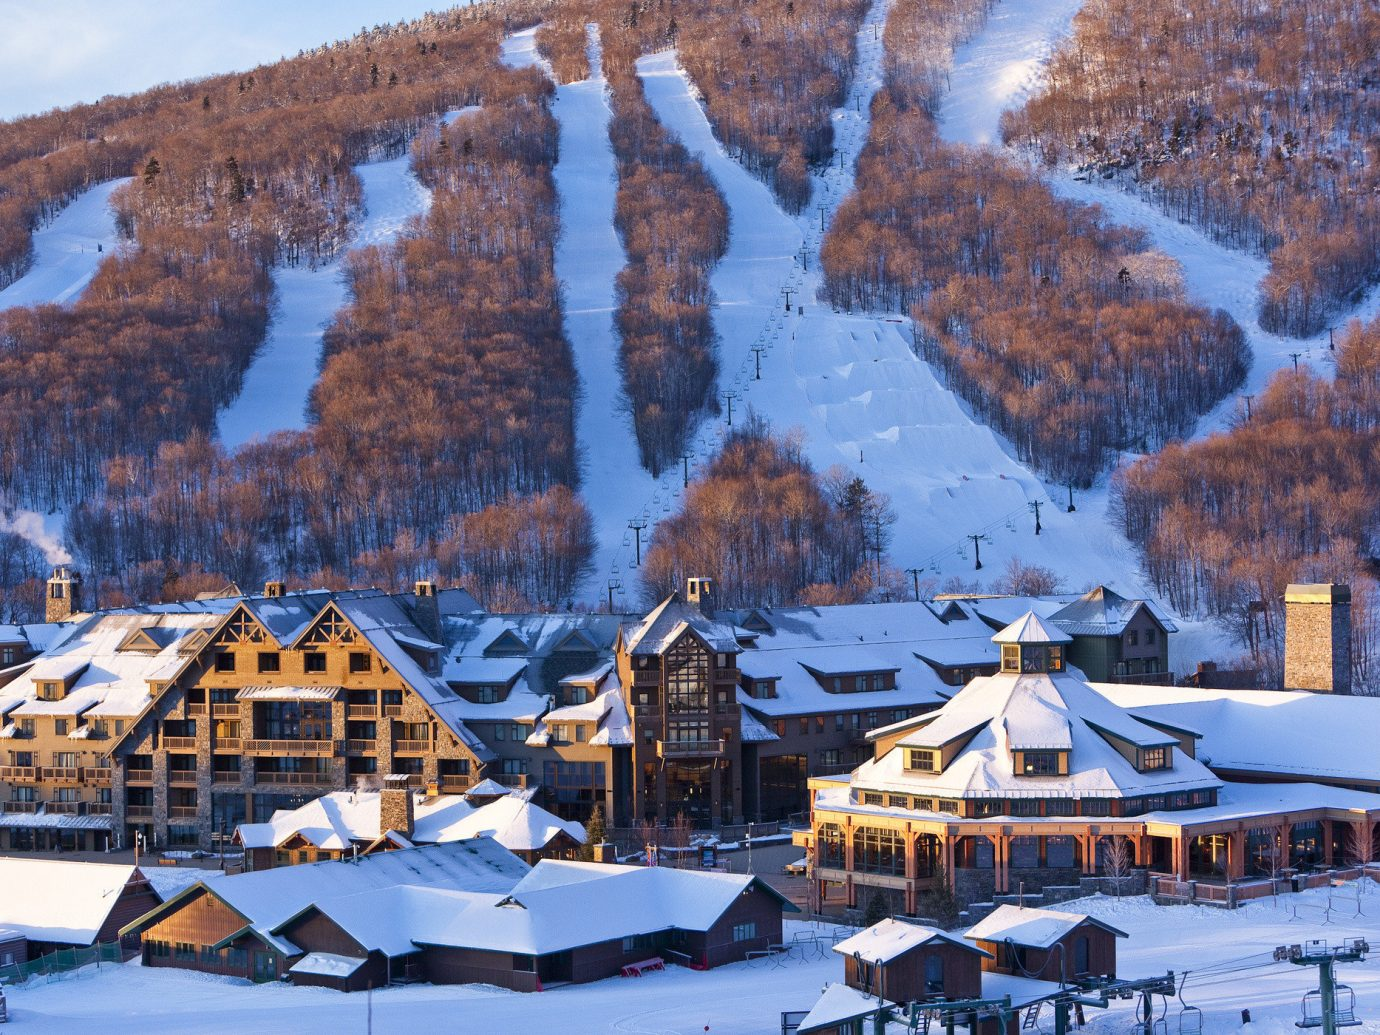 Hotels Weekend Getaways snow Winter outdoor mountain weather season geological phenomenon Resort mountain range piste